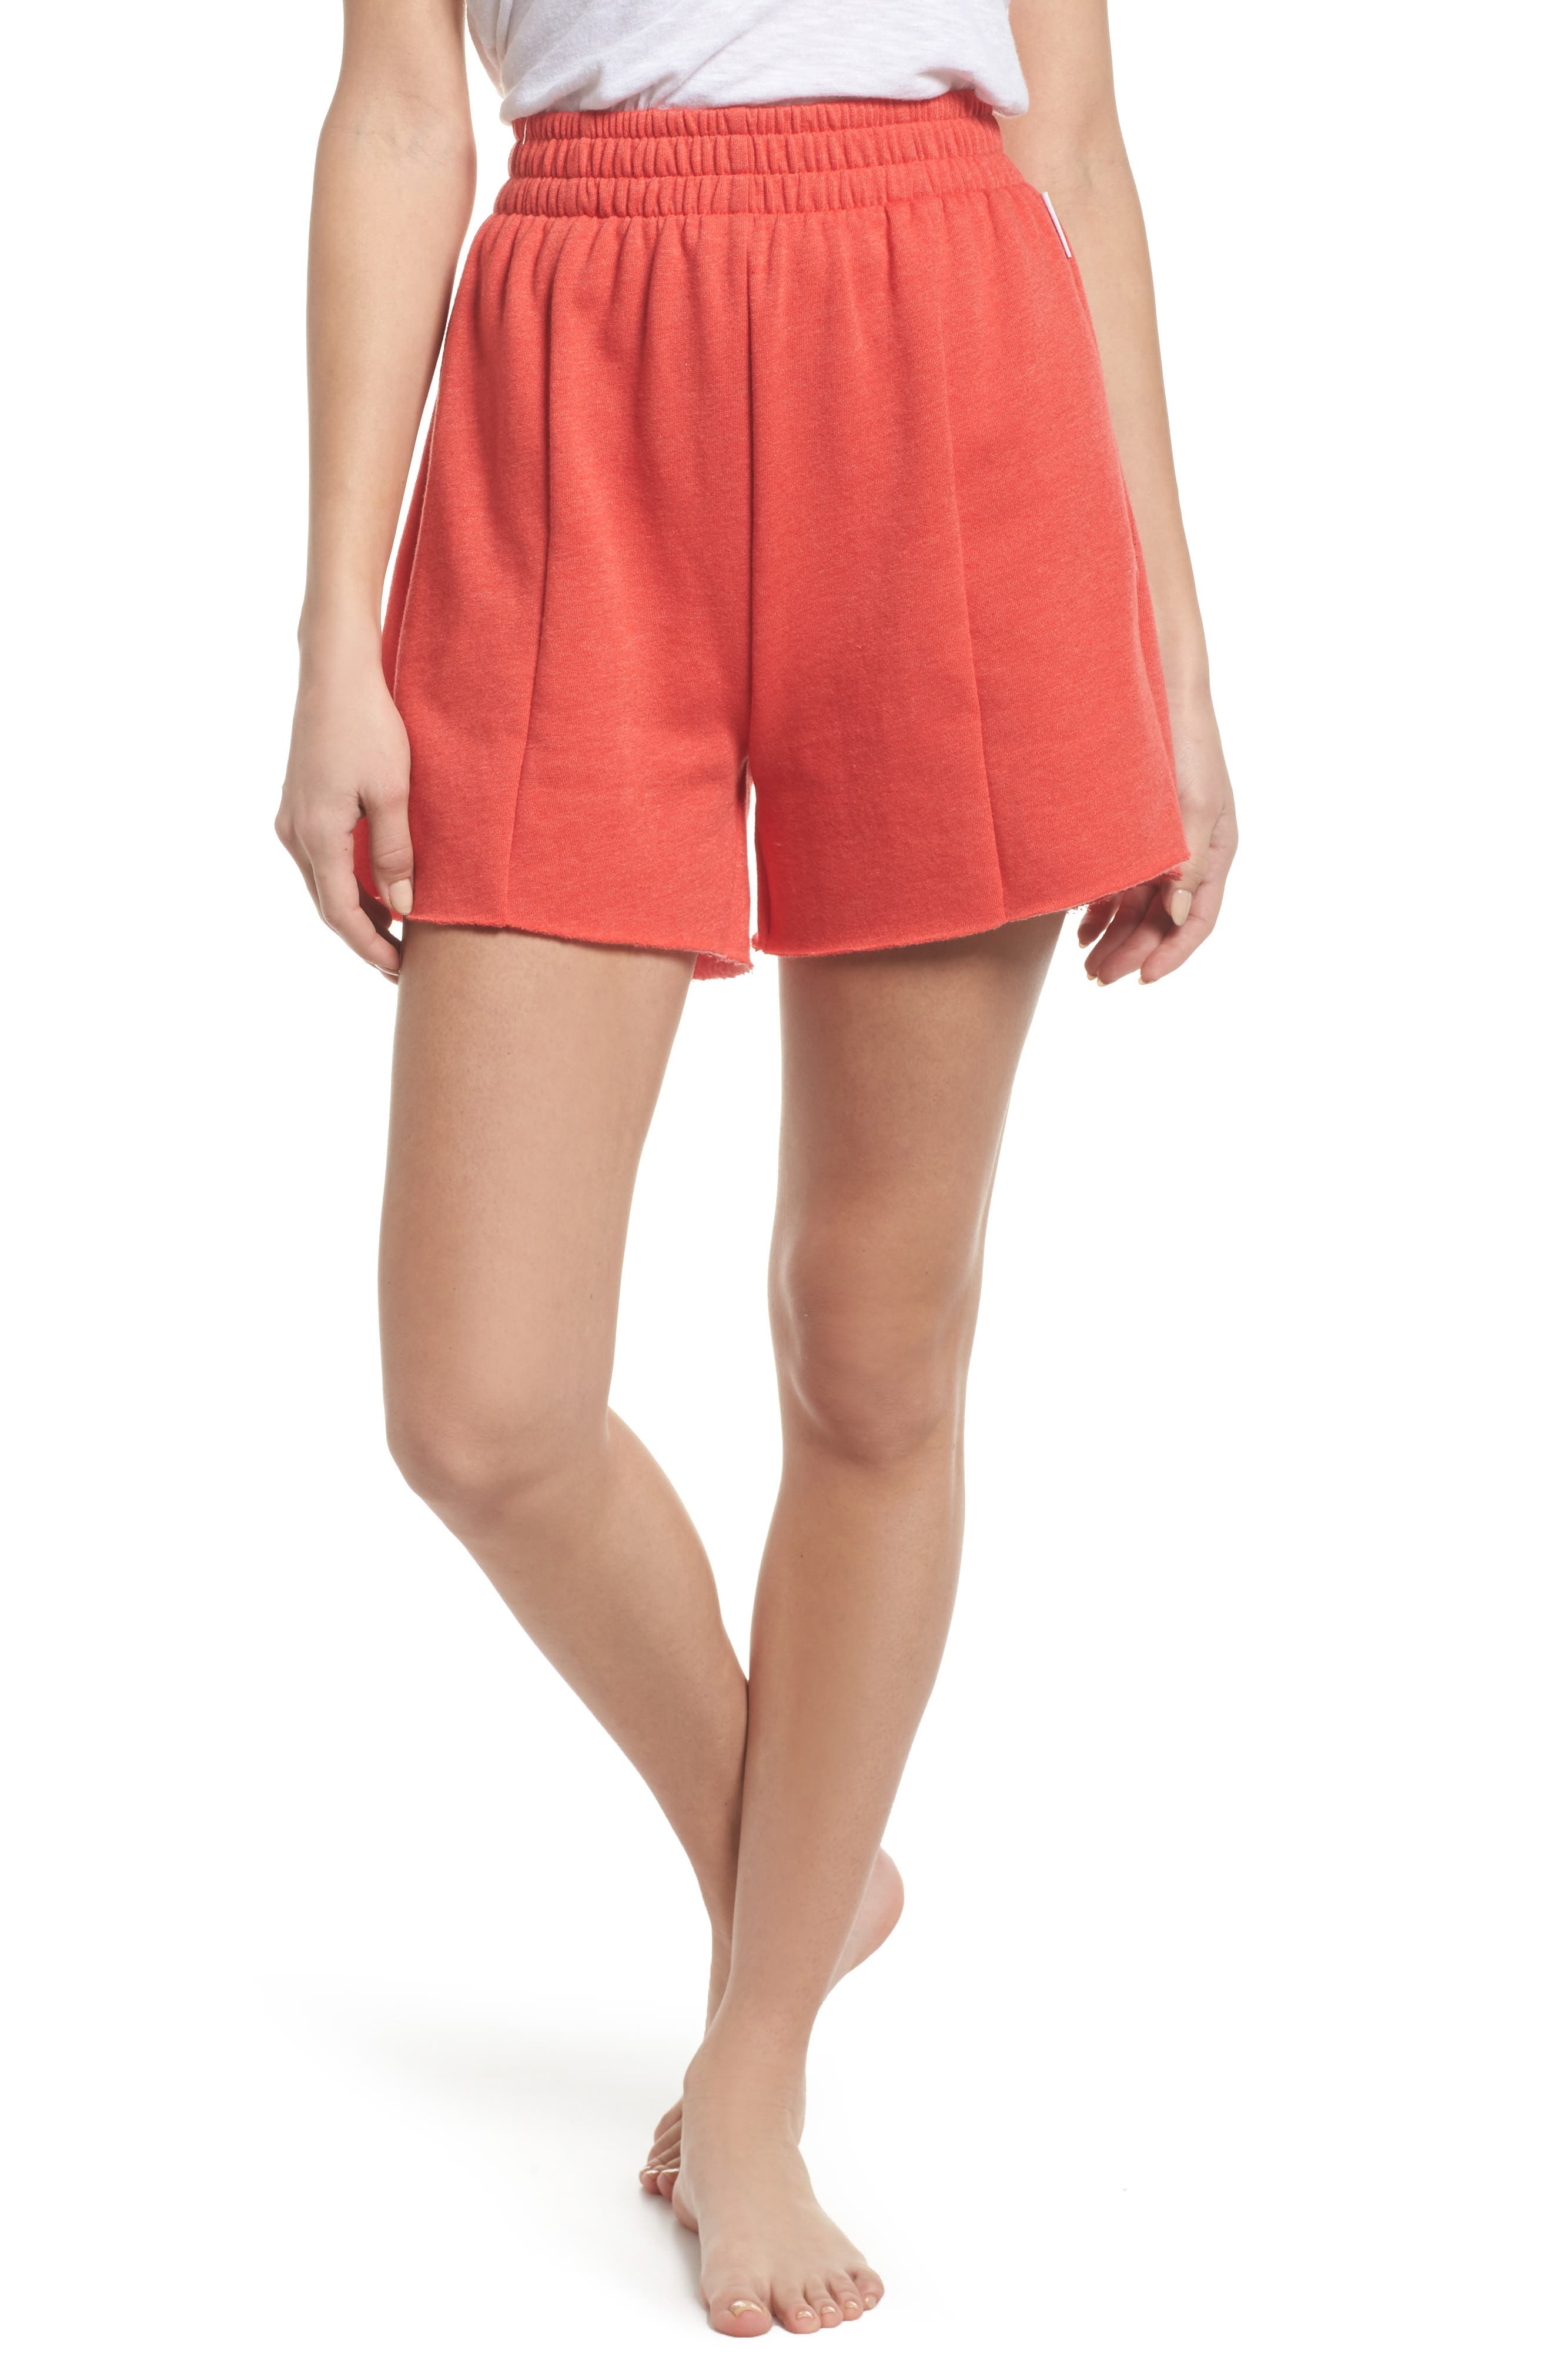 Bermuda Lounge Shorts,                         Main,                         color, Love Red